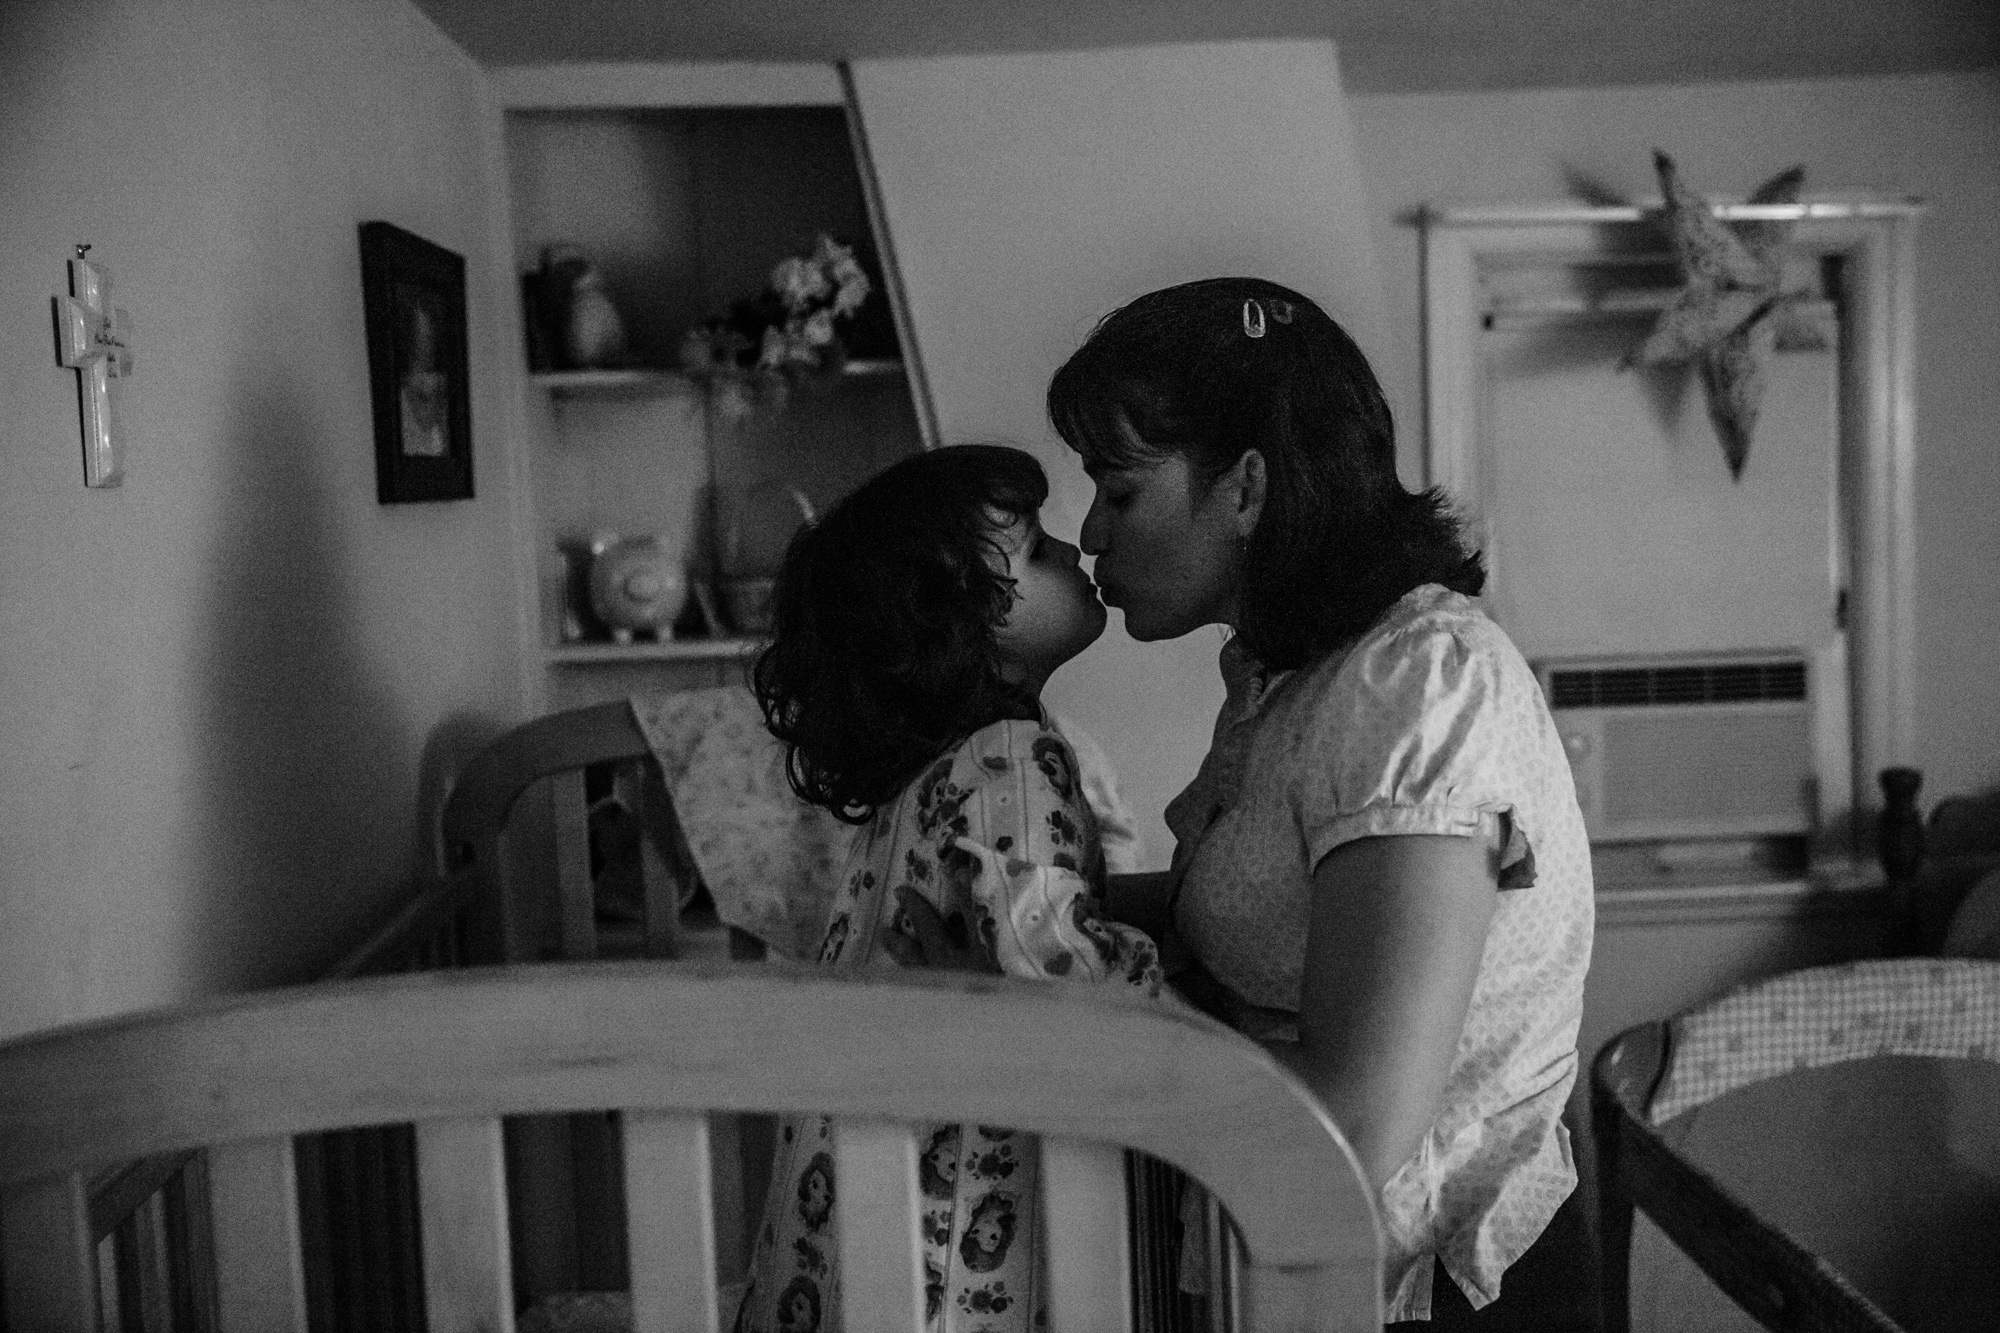 Woman kisses girl on lips while standing in crib